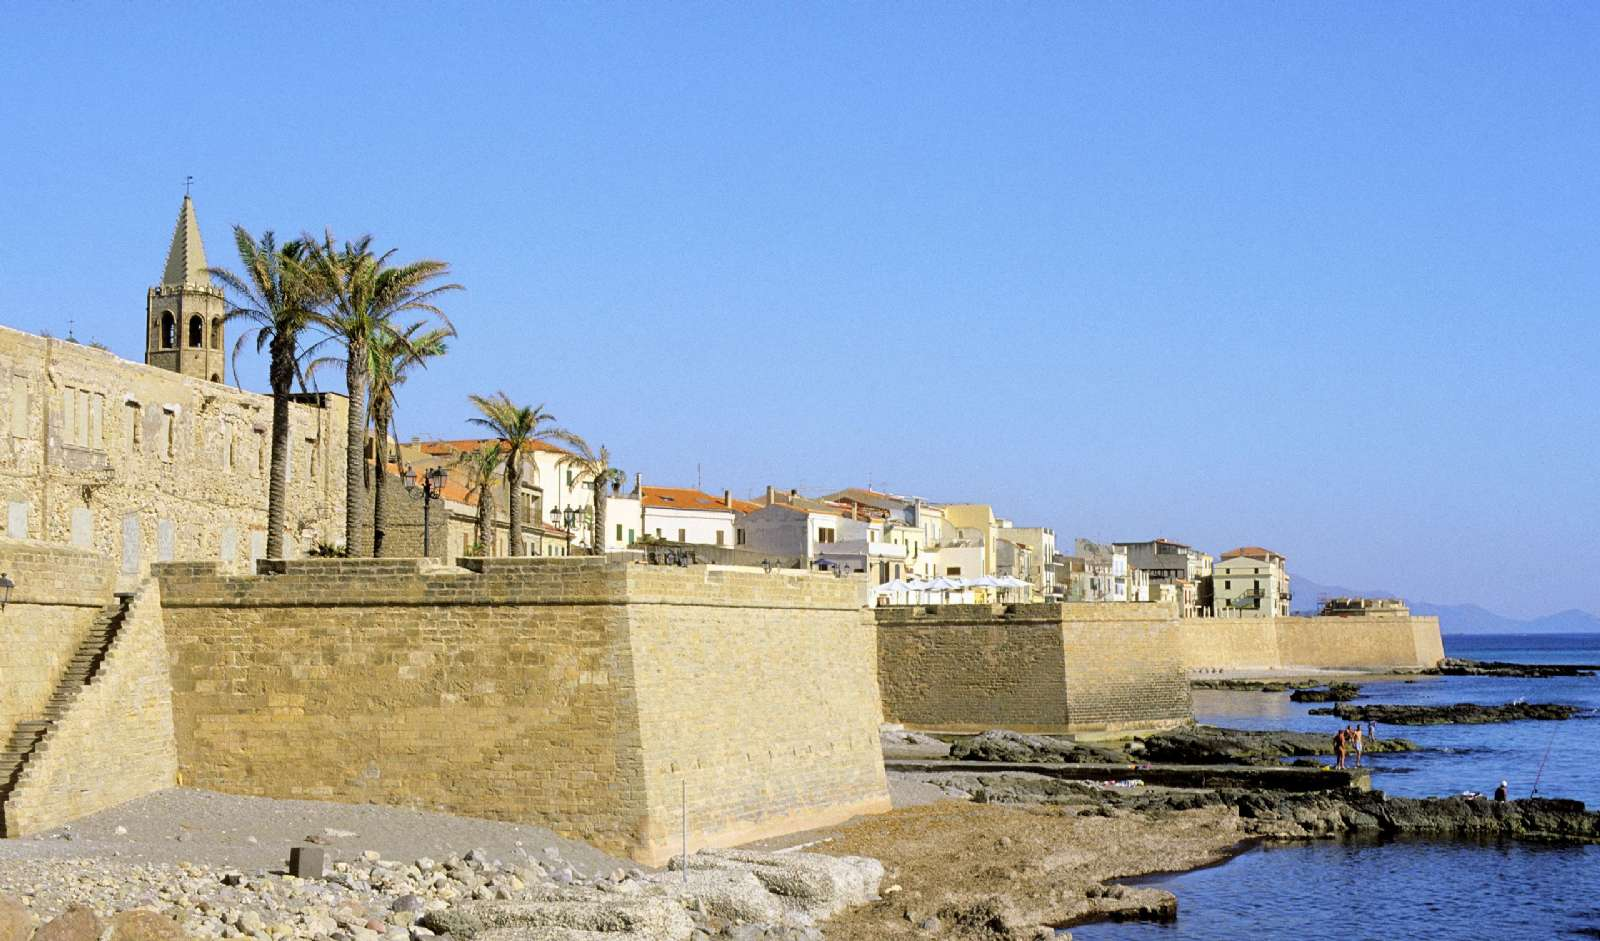 Alghero original castle wall from the Middle Ages and the Cathedral of Santa Maria's beautiful, Gothic bell tower